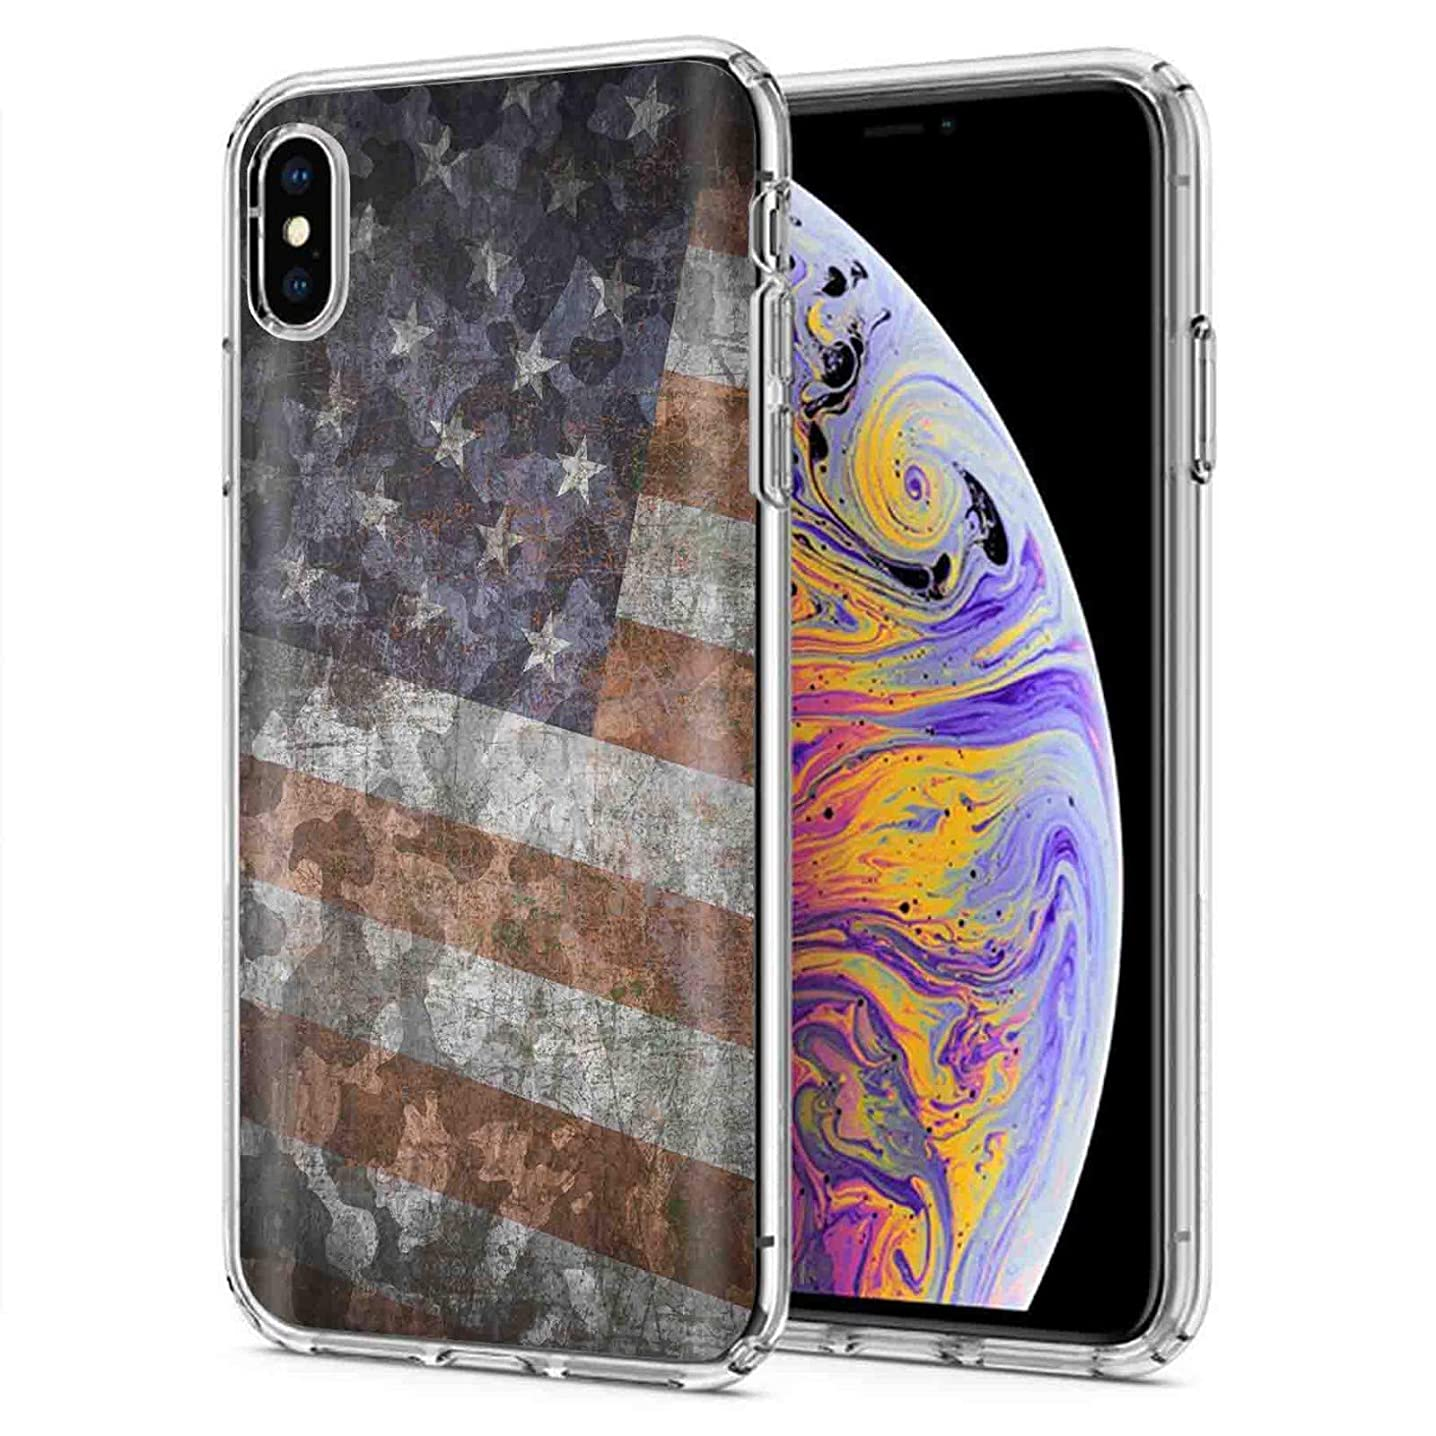 Apple iPhone Xs Max Deluxe Phone Cover Designed in USA [TalkingCase], Clear Premium Thin Gel Phone Cover Ultra Flexible Slim TPU for Apple iPhone Max,iPhone 10 Max [American Flag Camouflage] Design